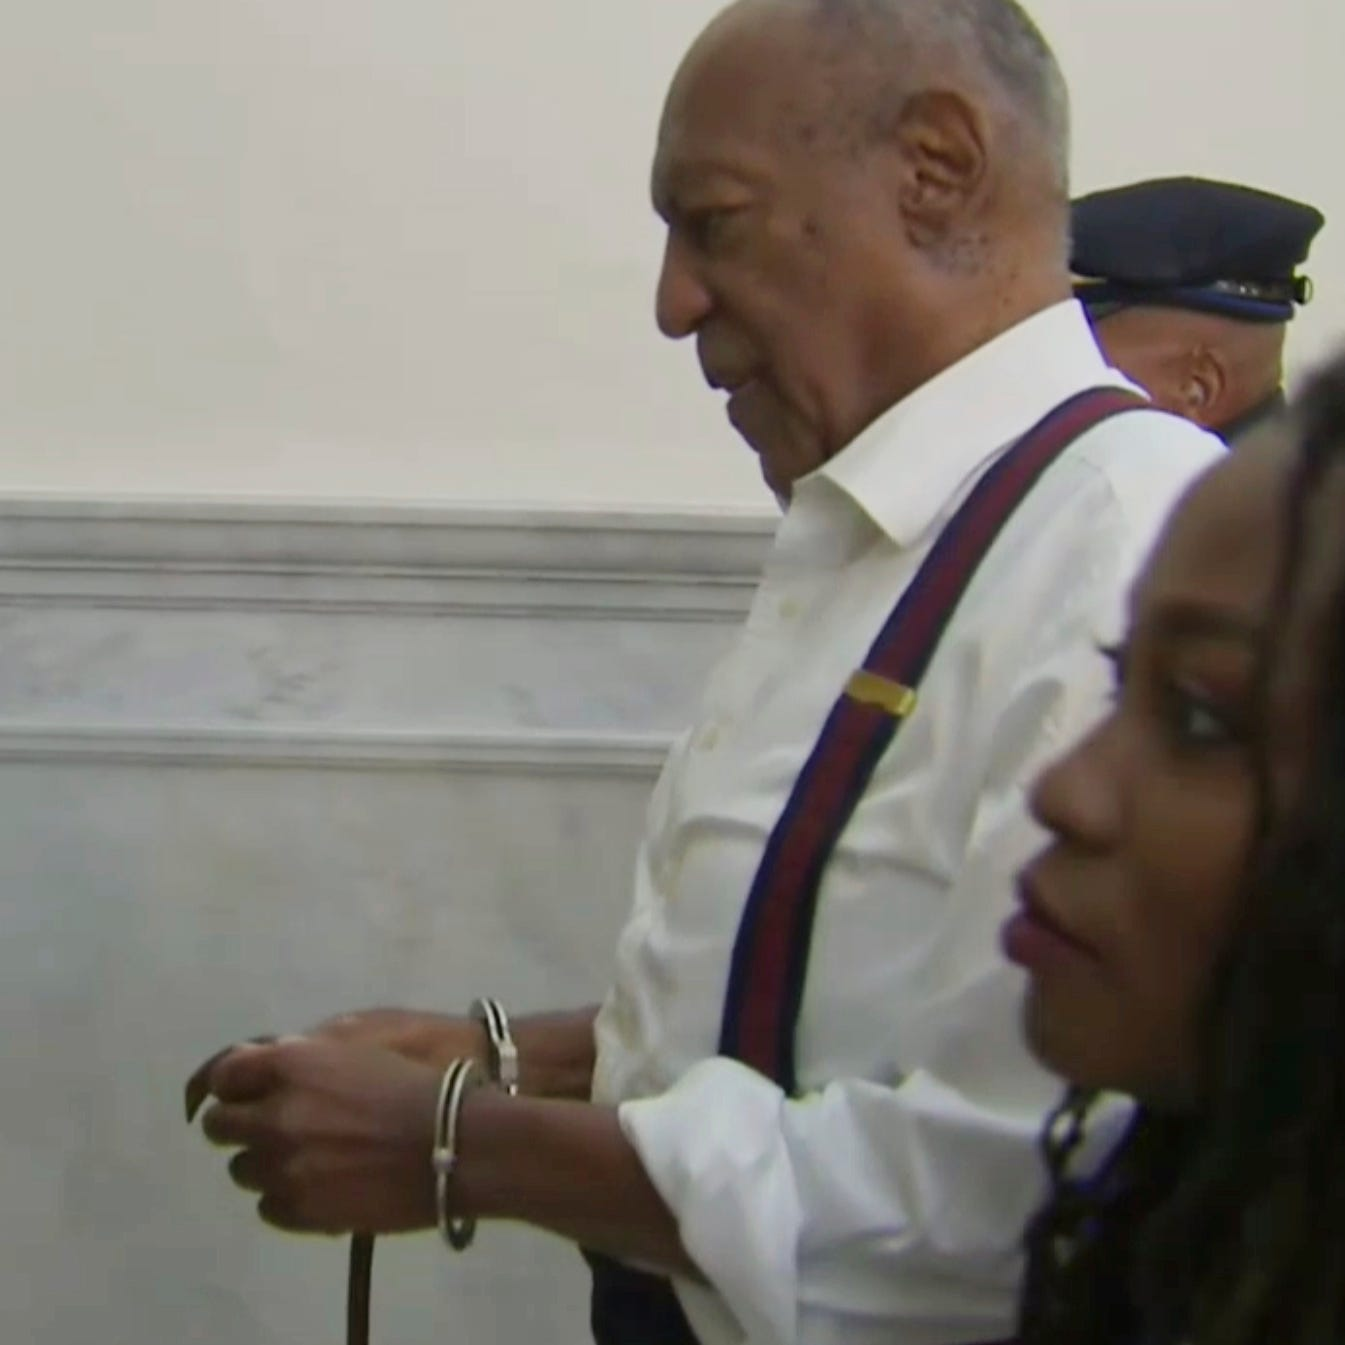 Bill Cosby was led away to prison in handcuffs after being denied bail on the grounds that his sentence is longer than two years.